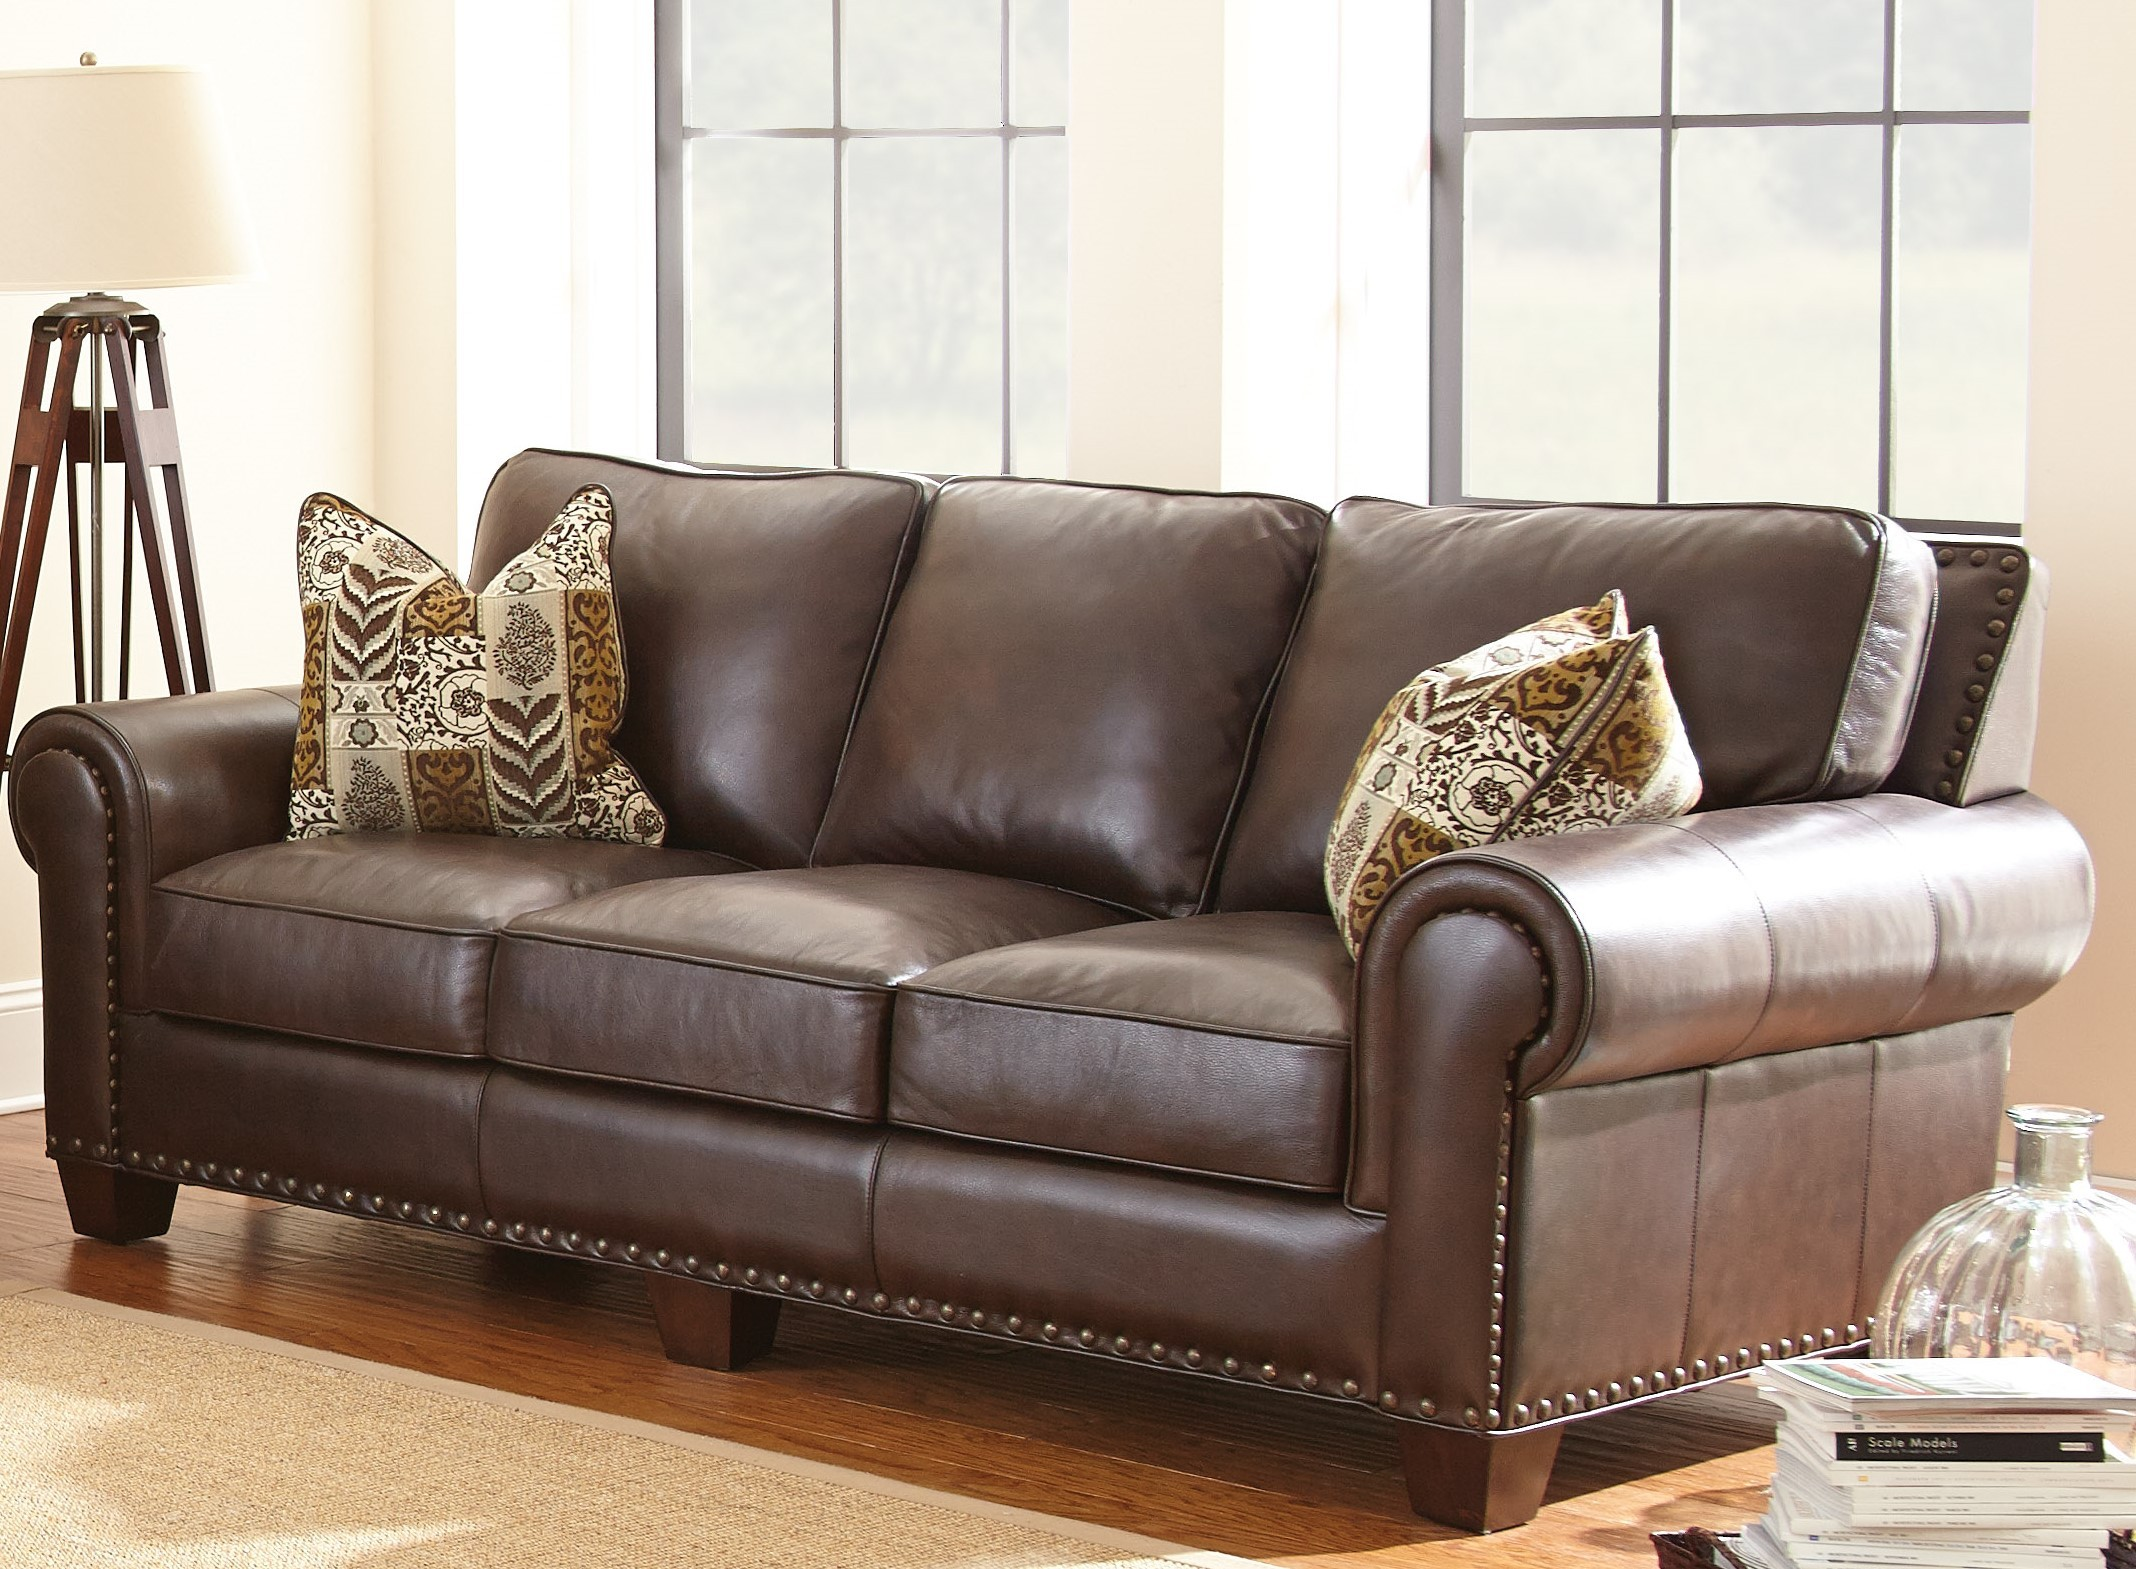 leather sofa cushions made to measure motif cover bed inoac escher top grain with 2 accent pillows from